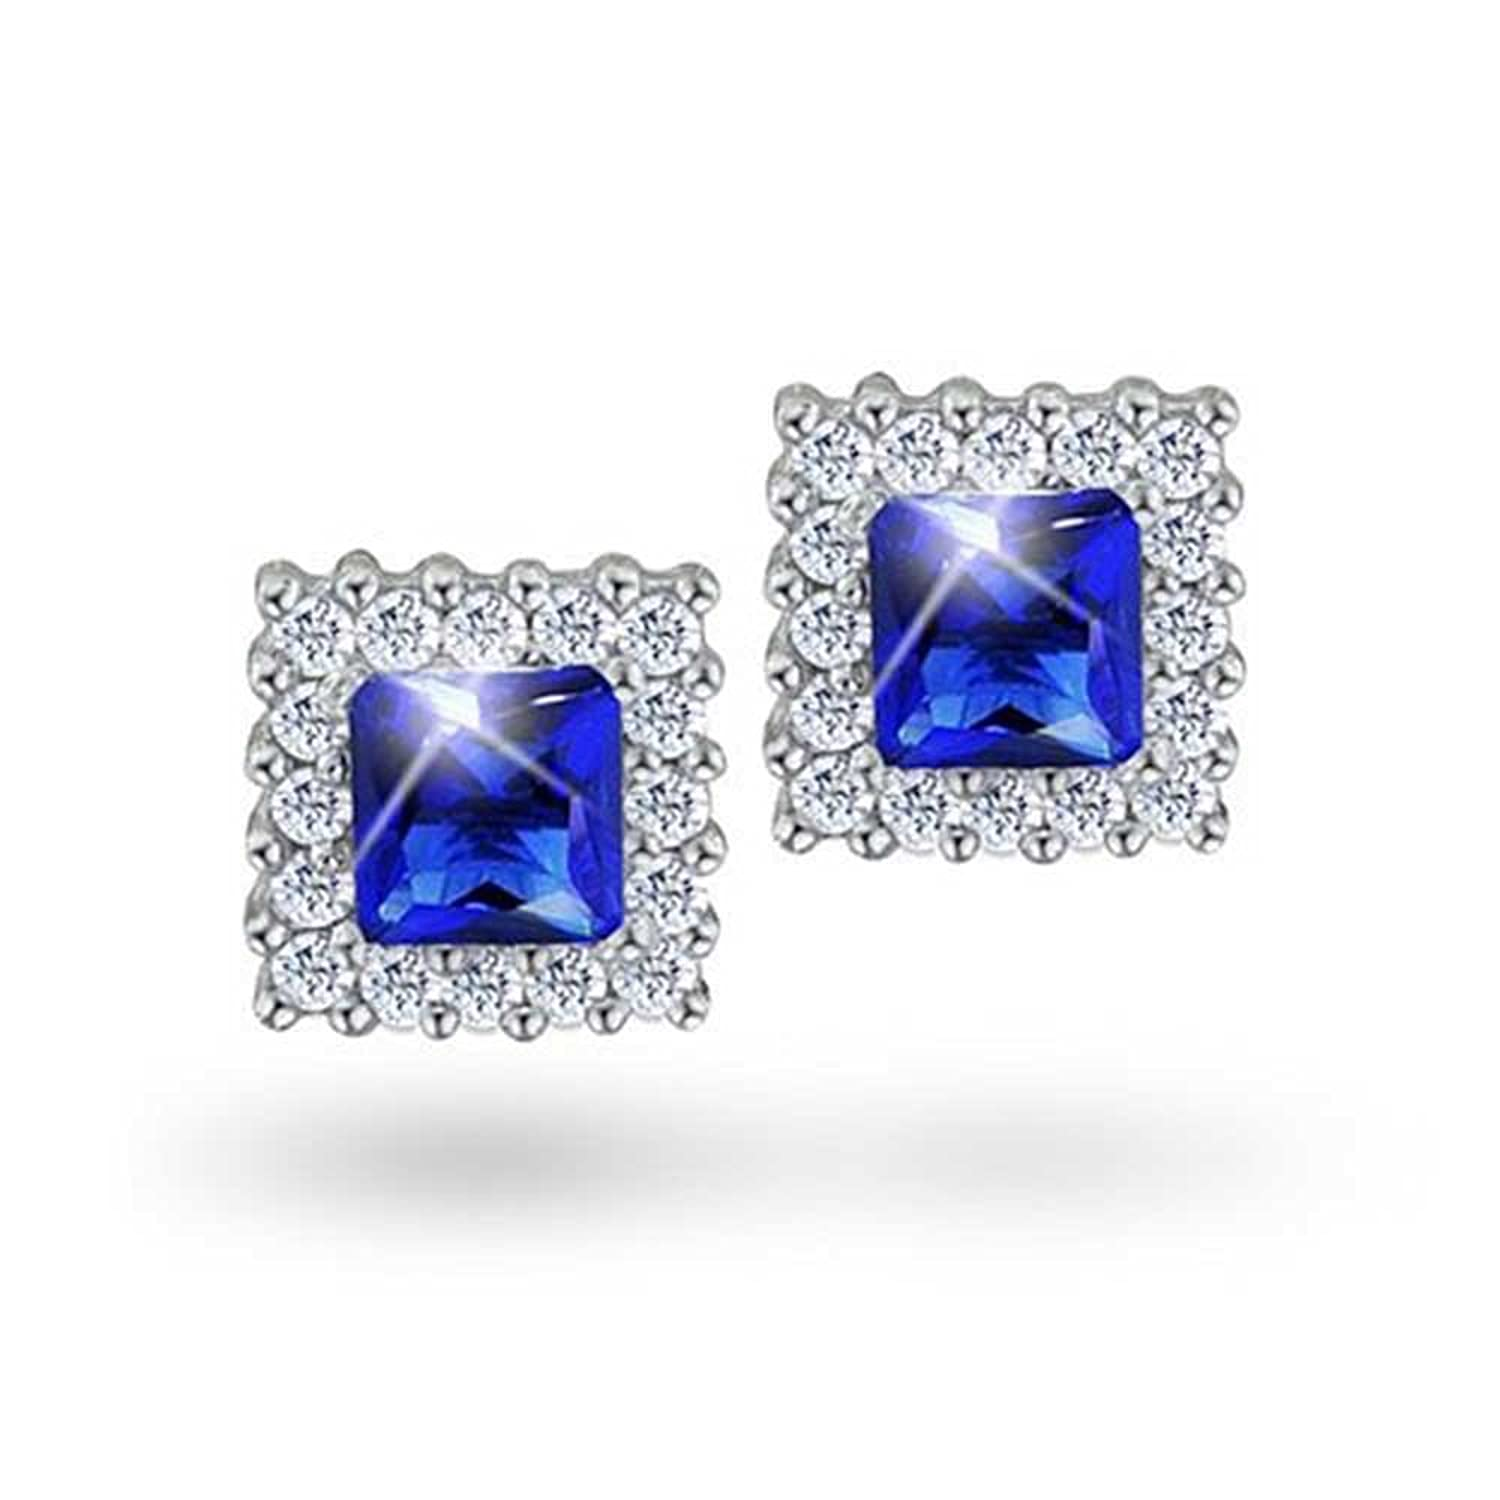 59c0c11f1 Amazon.com: Bling Jewelry Square Princess Cut Simulated September  Birthstone CZ Stud earrings 925 SterlingSilver 8mm: Jewelry